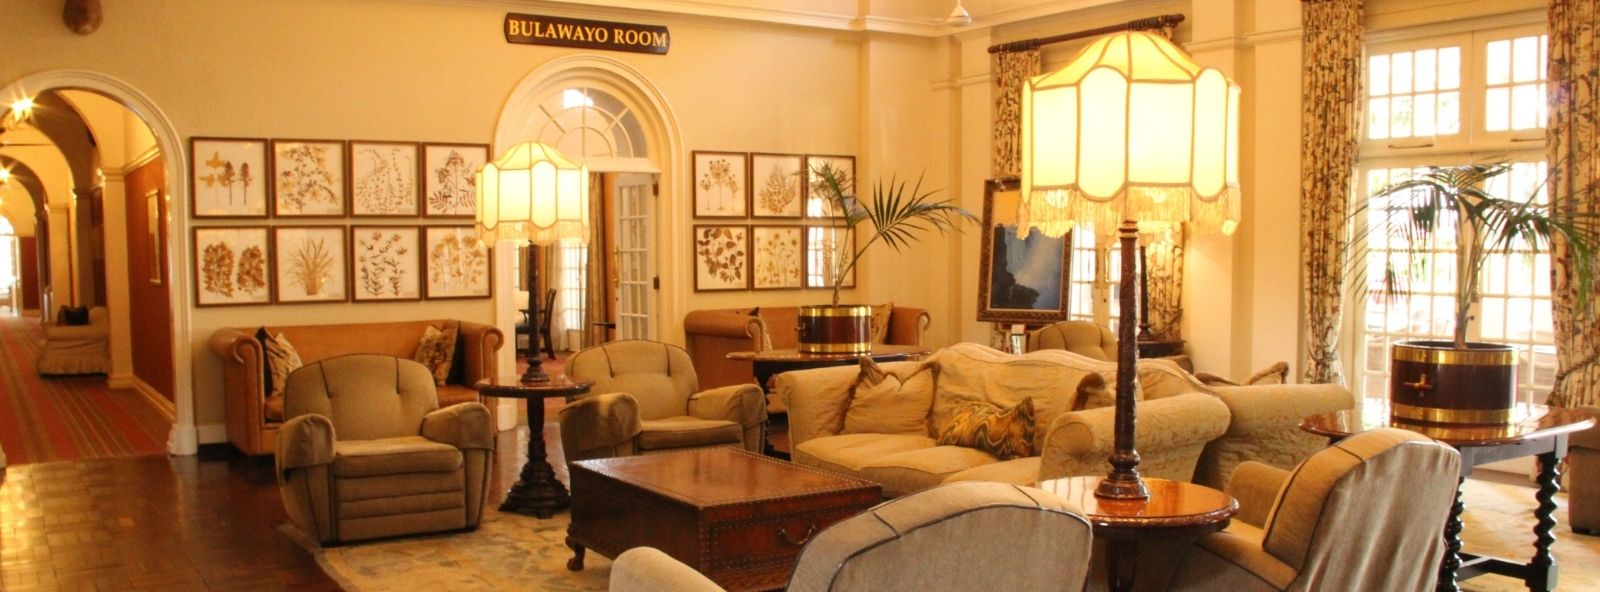 The magnificent sitting room of the Victoria Falls Hotel - A room tastefully furnished with armchairs, lamps, piano and polished side tables and plants - colonial style